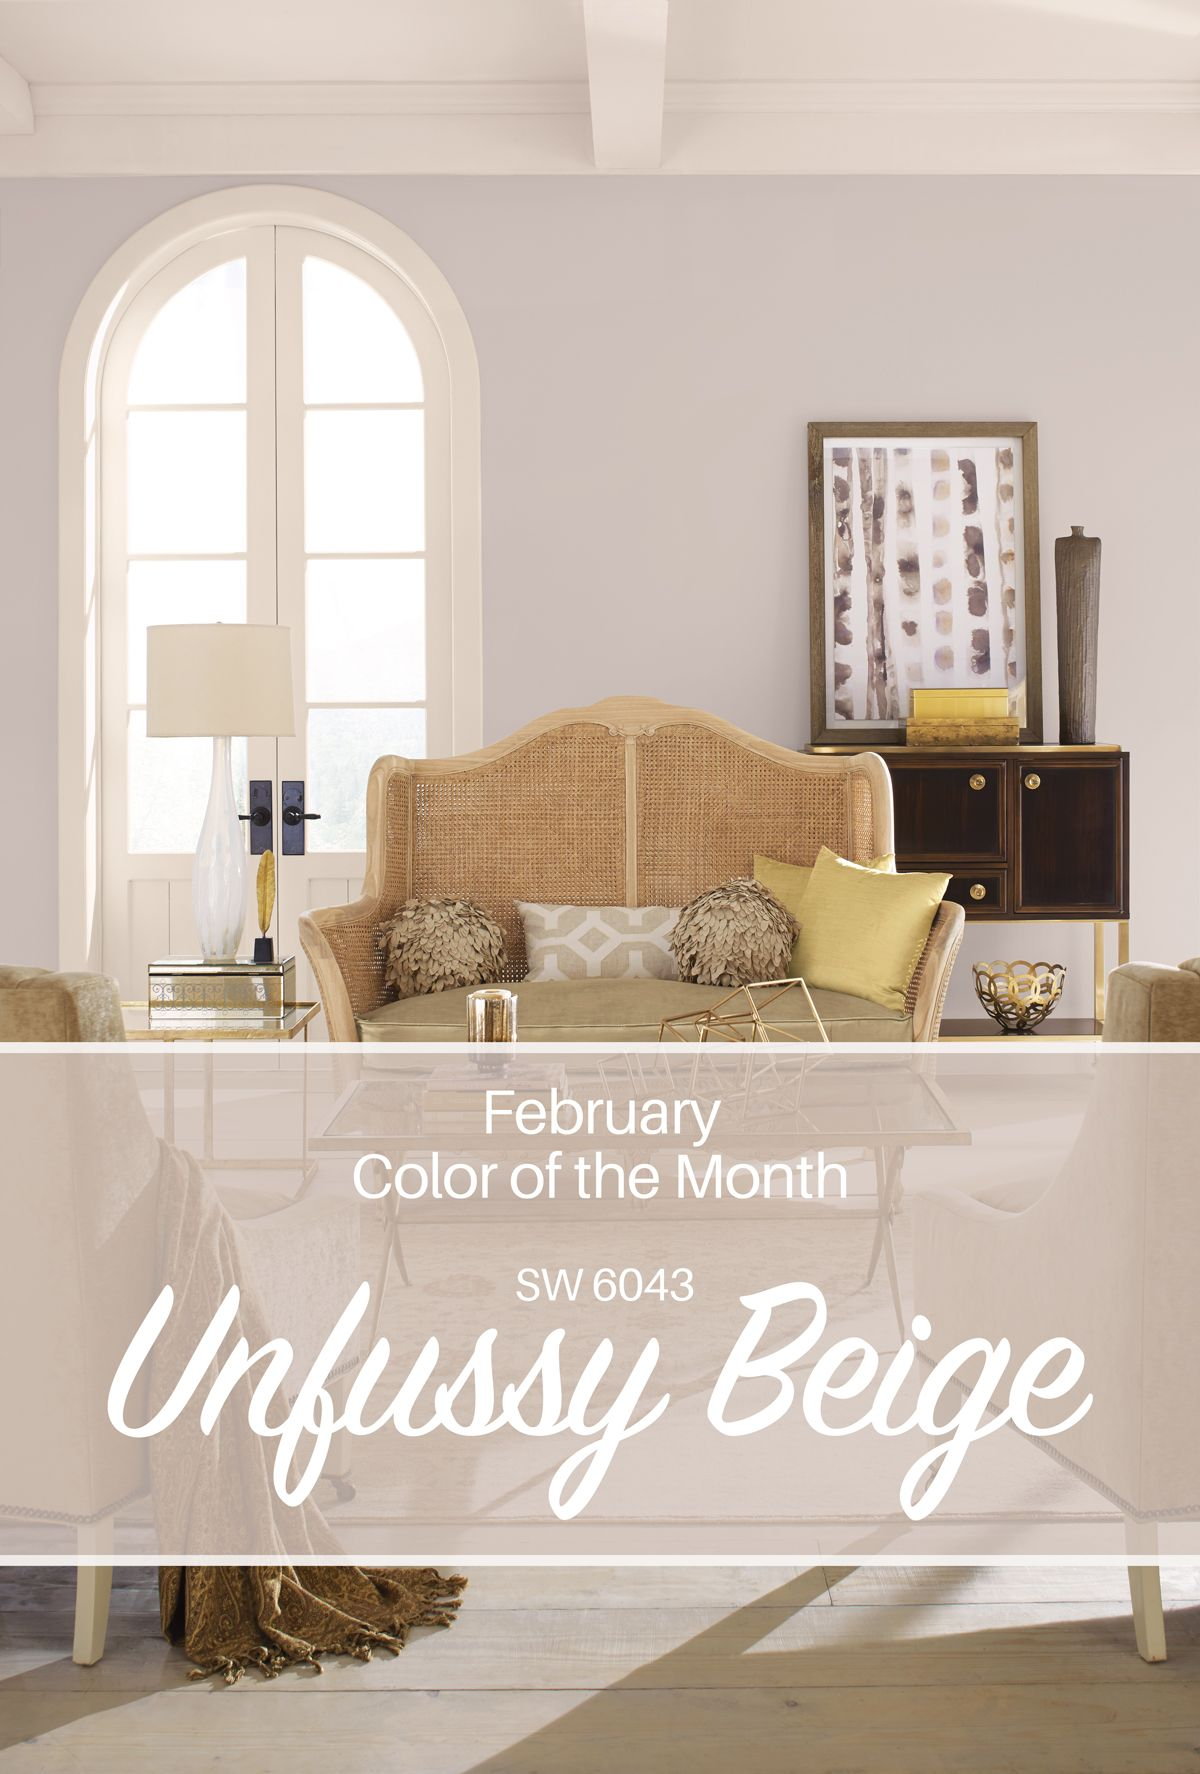 Sherwin williams basket beige photos - Sherwin Williams February Color Of The Month Unfussy Beige Sw 6043